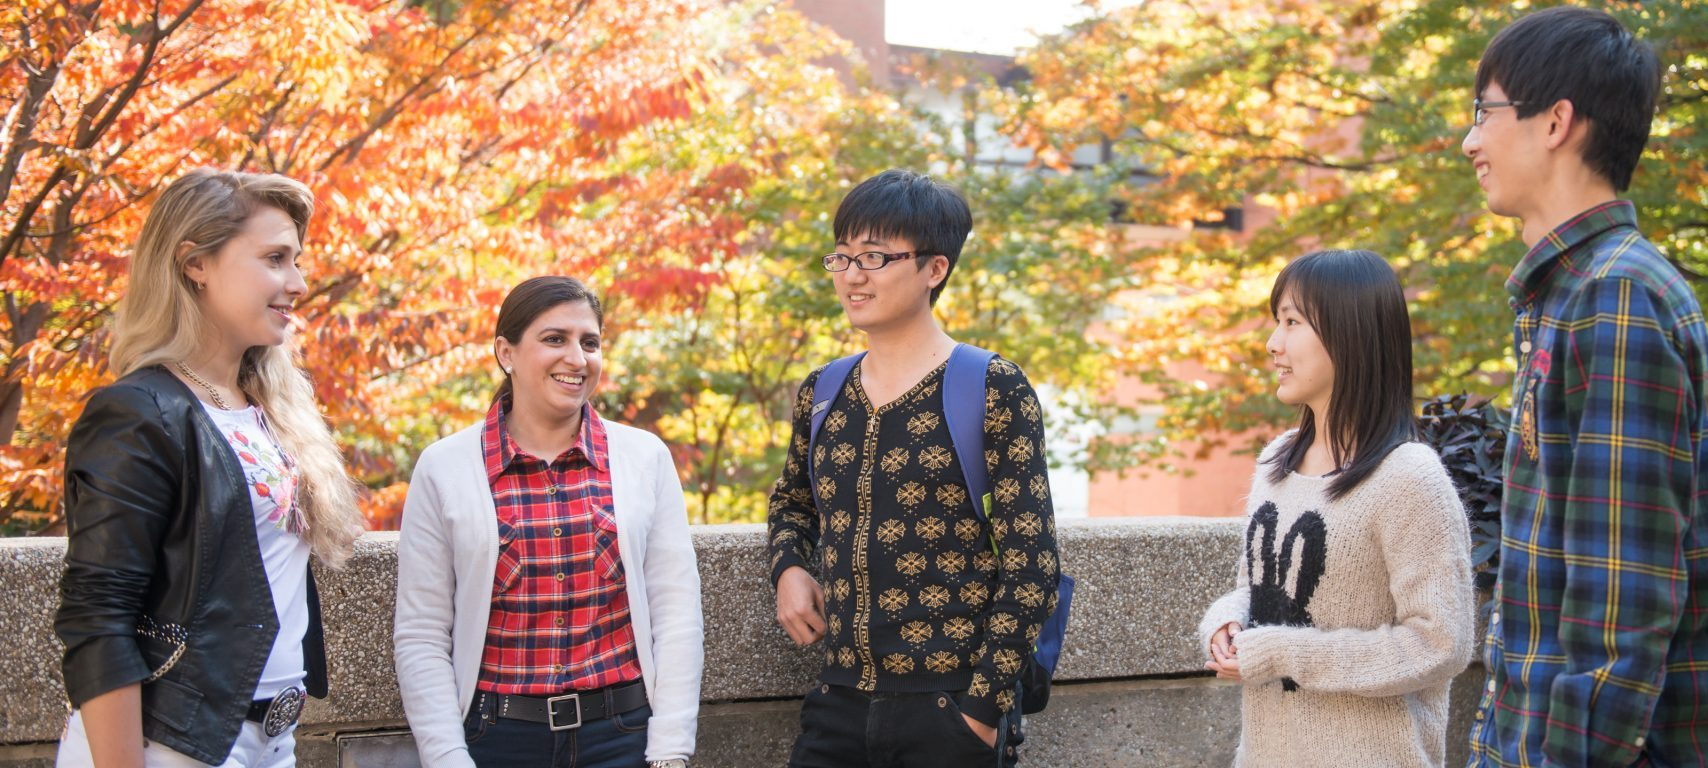 UMBC named a top destination for international students